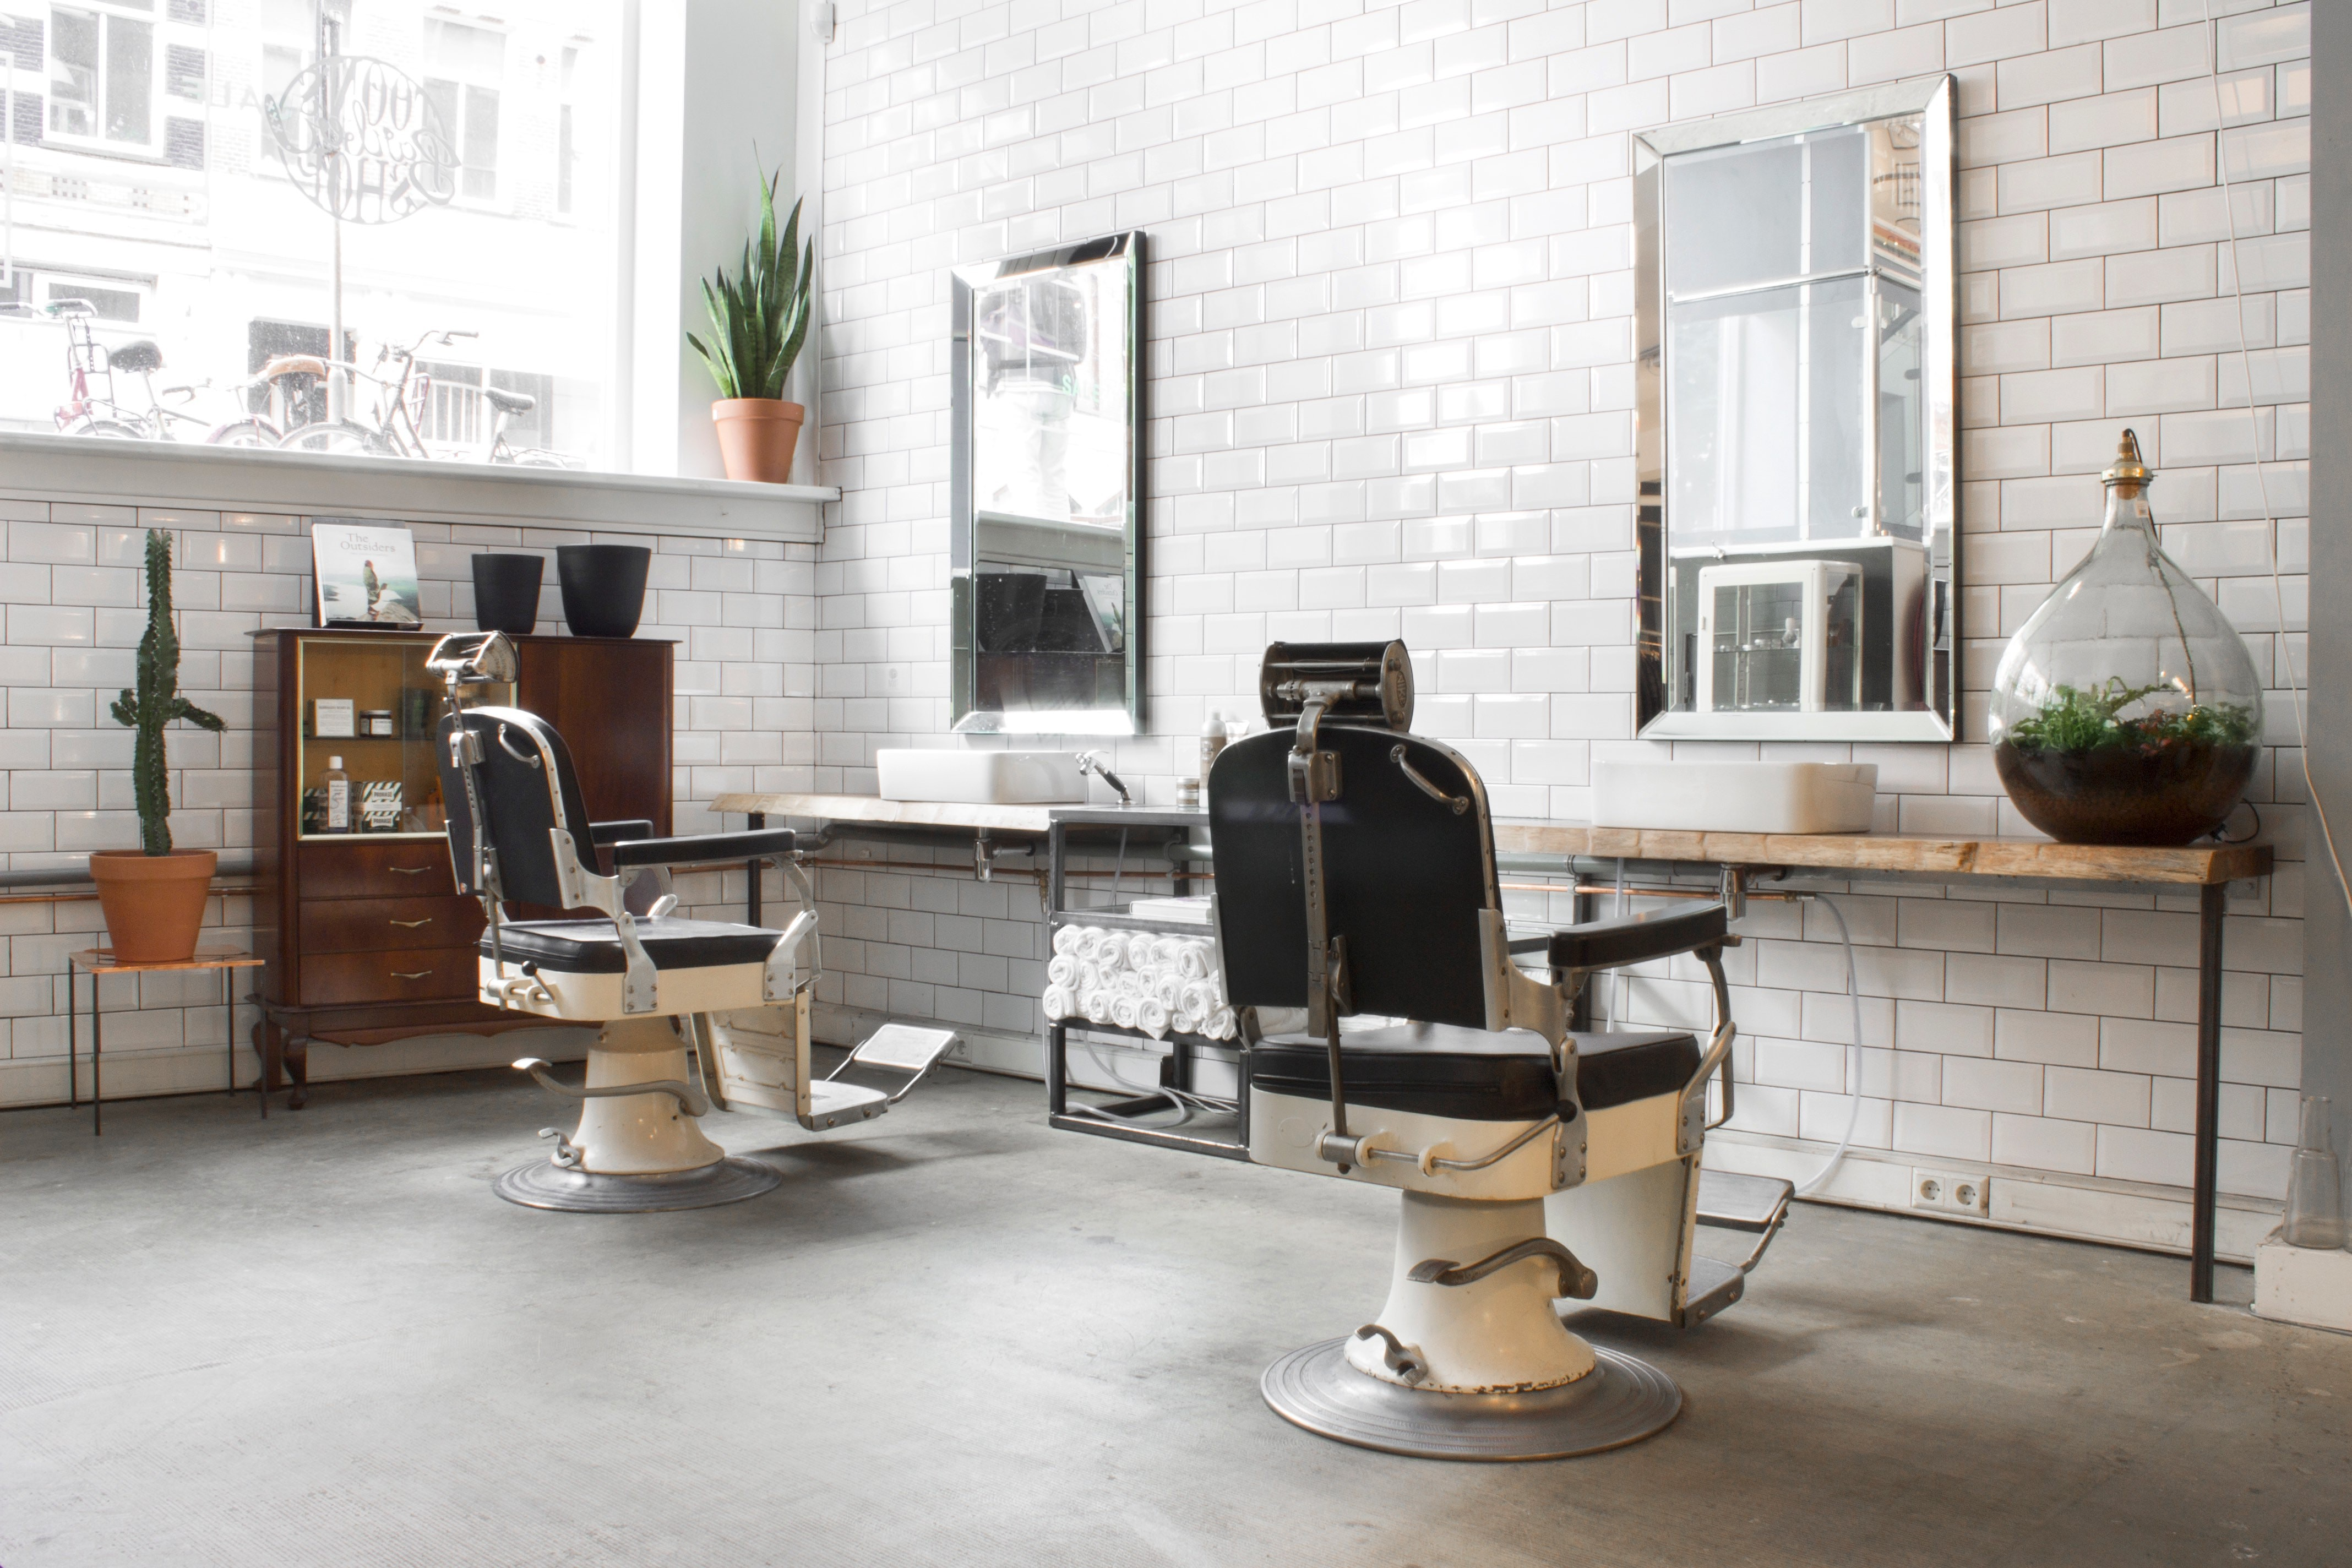 The Coolest Barbers in Amsterdam